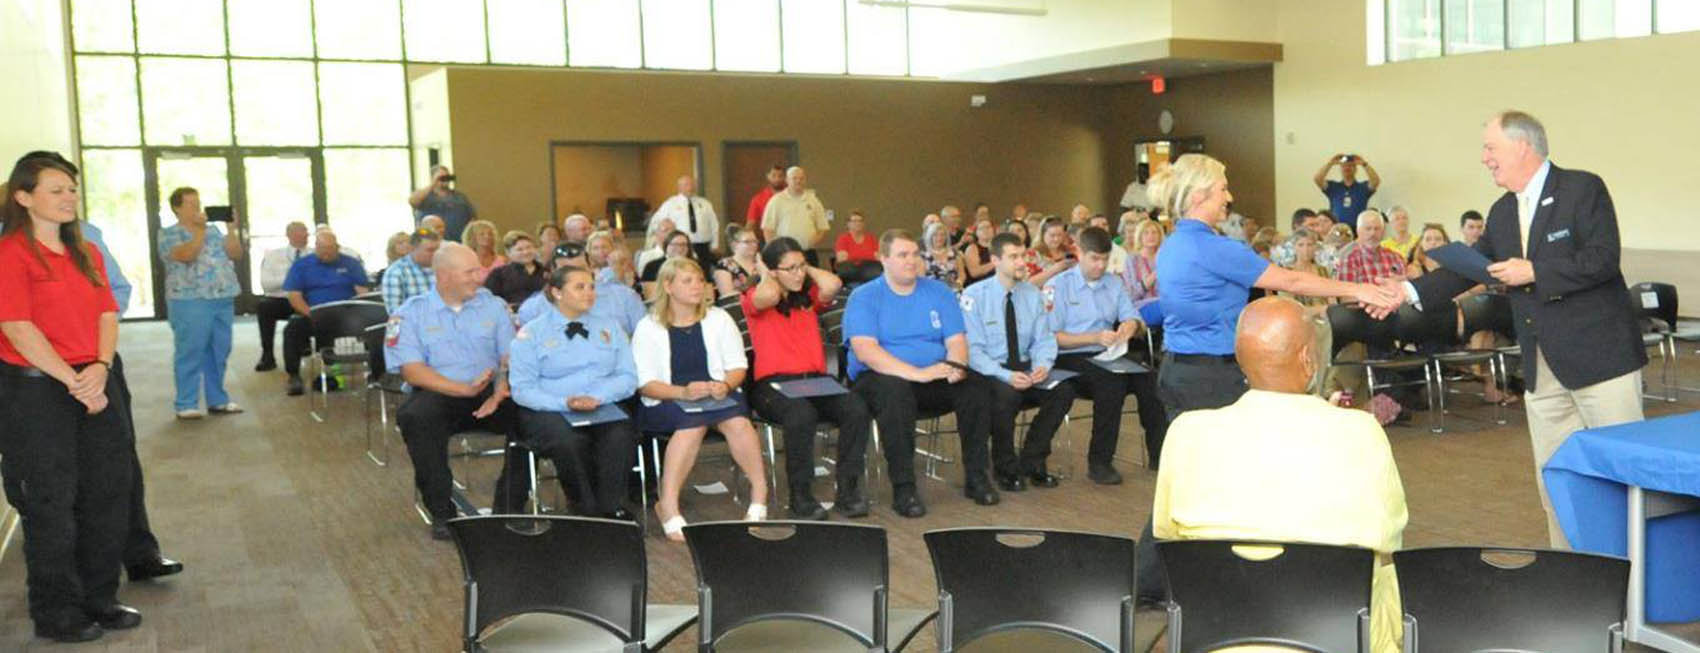 Read the full story, CCCC graduates 60 from EMS program